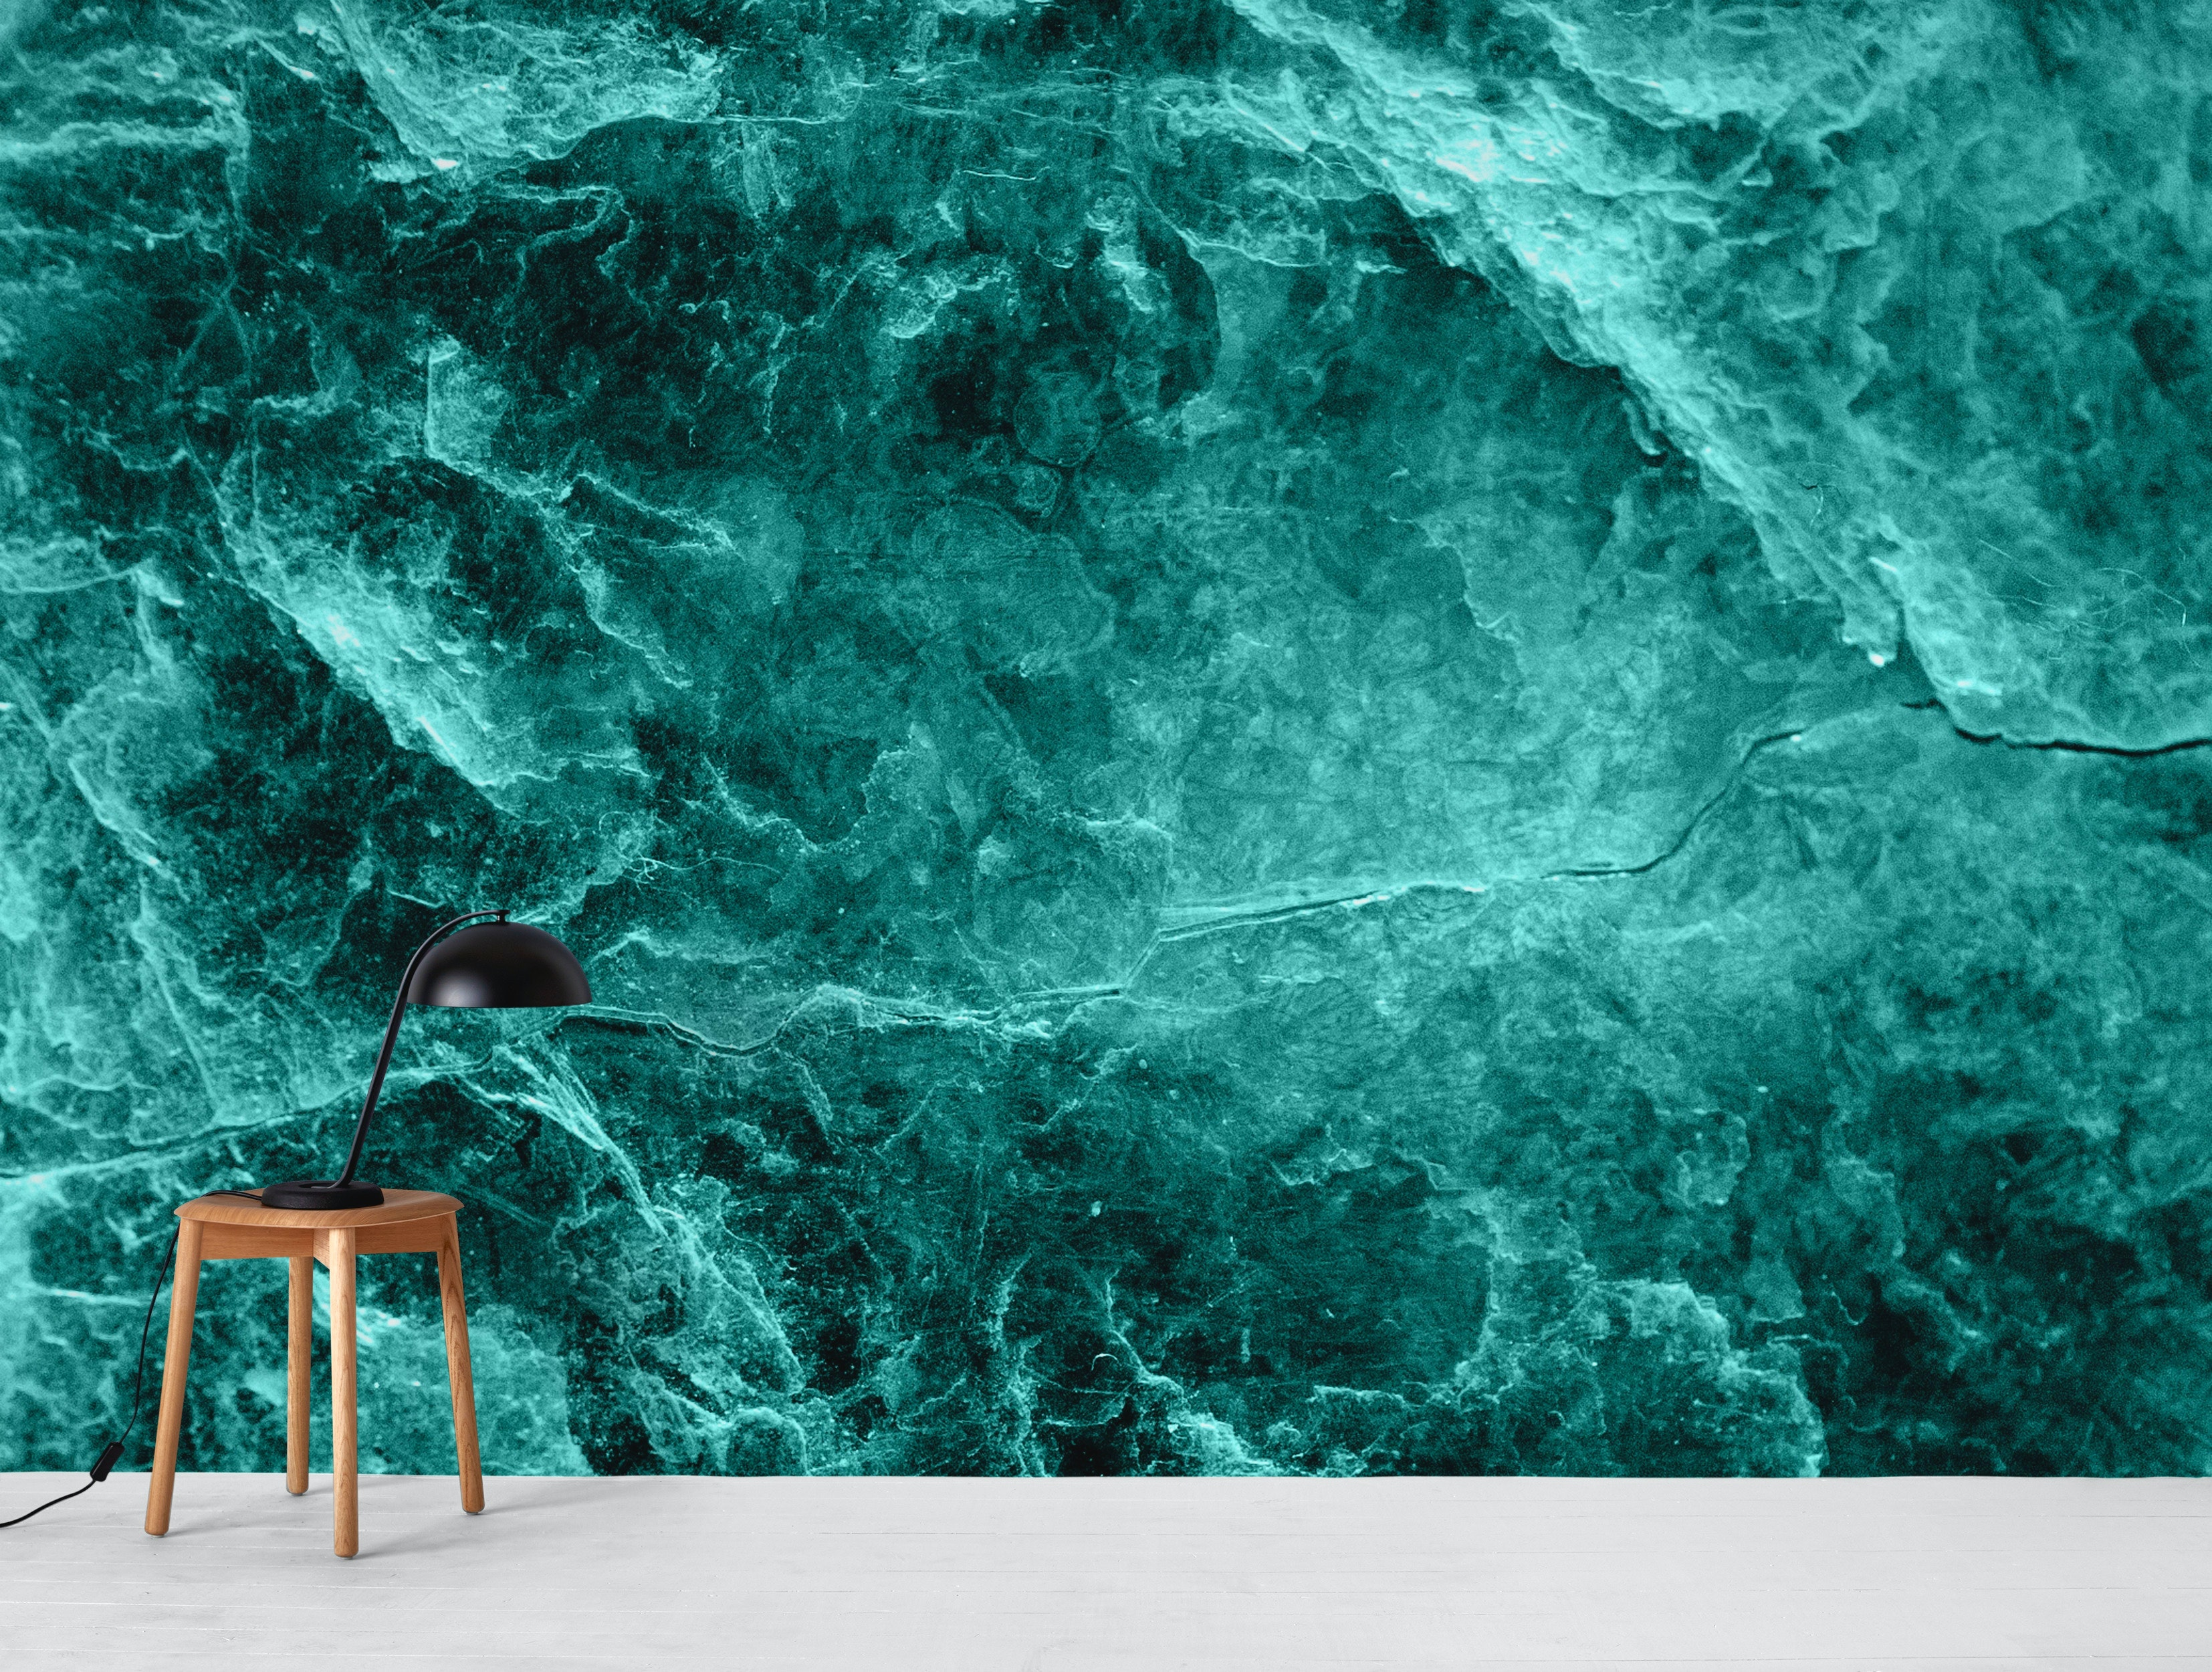 Buy Enigmatic Deep Green Marble 1 Wallpaper Free Us Shipping At Happywall Com